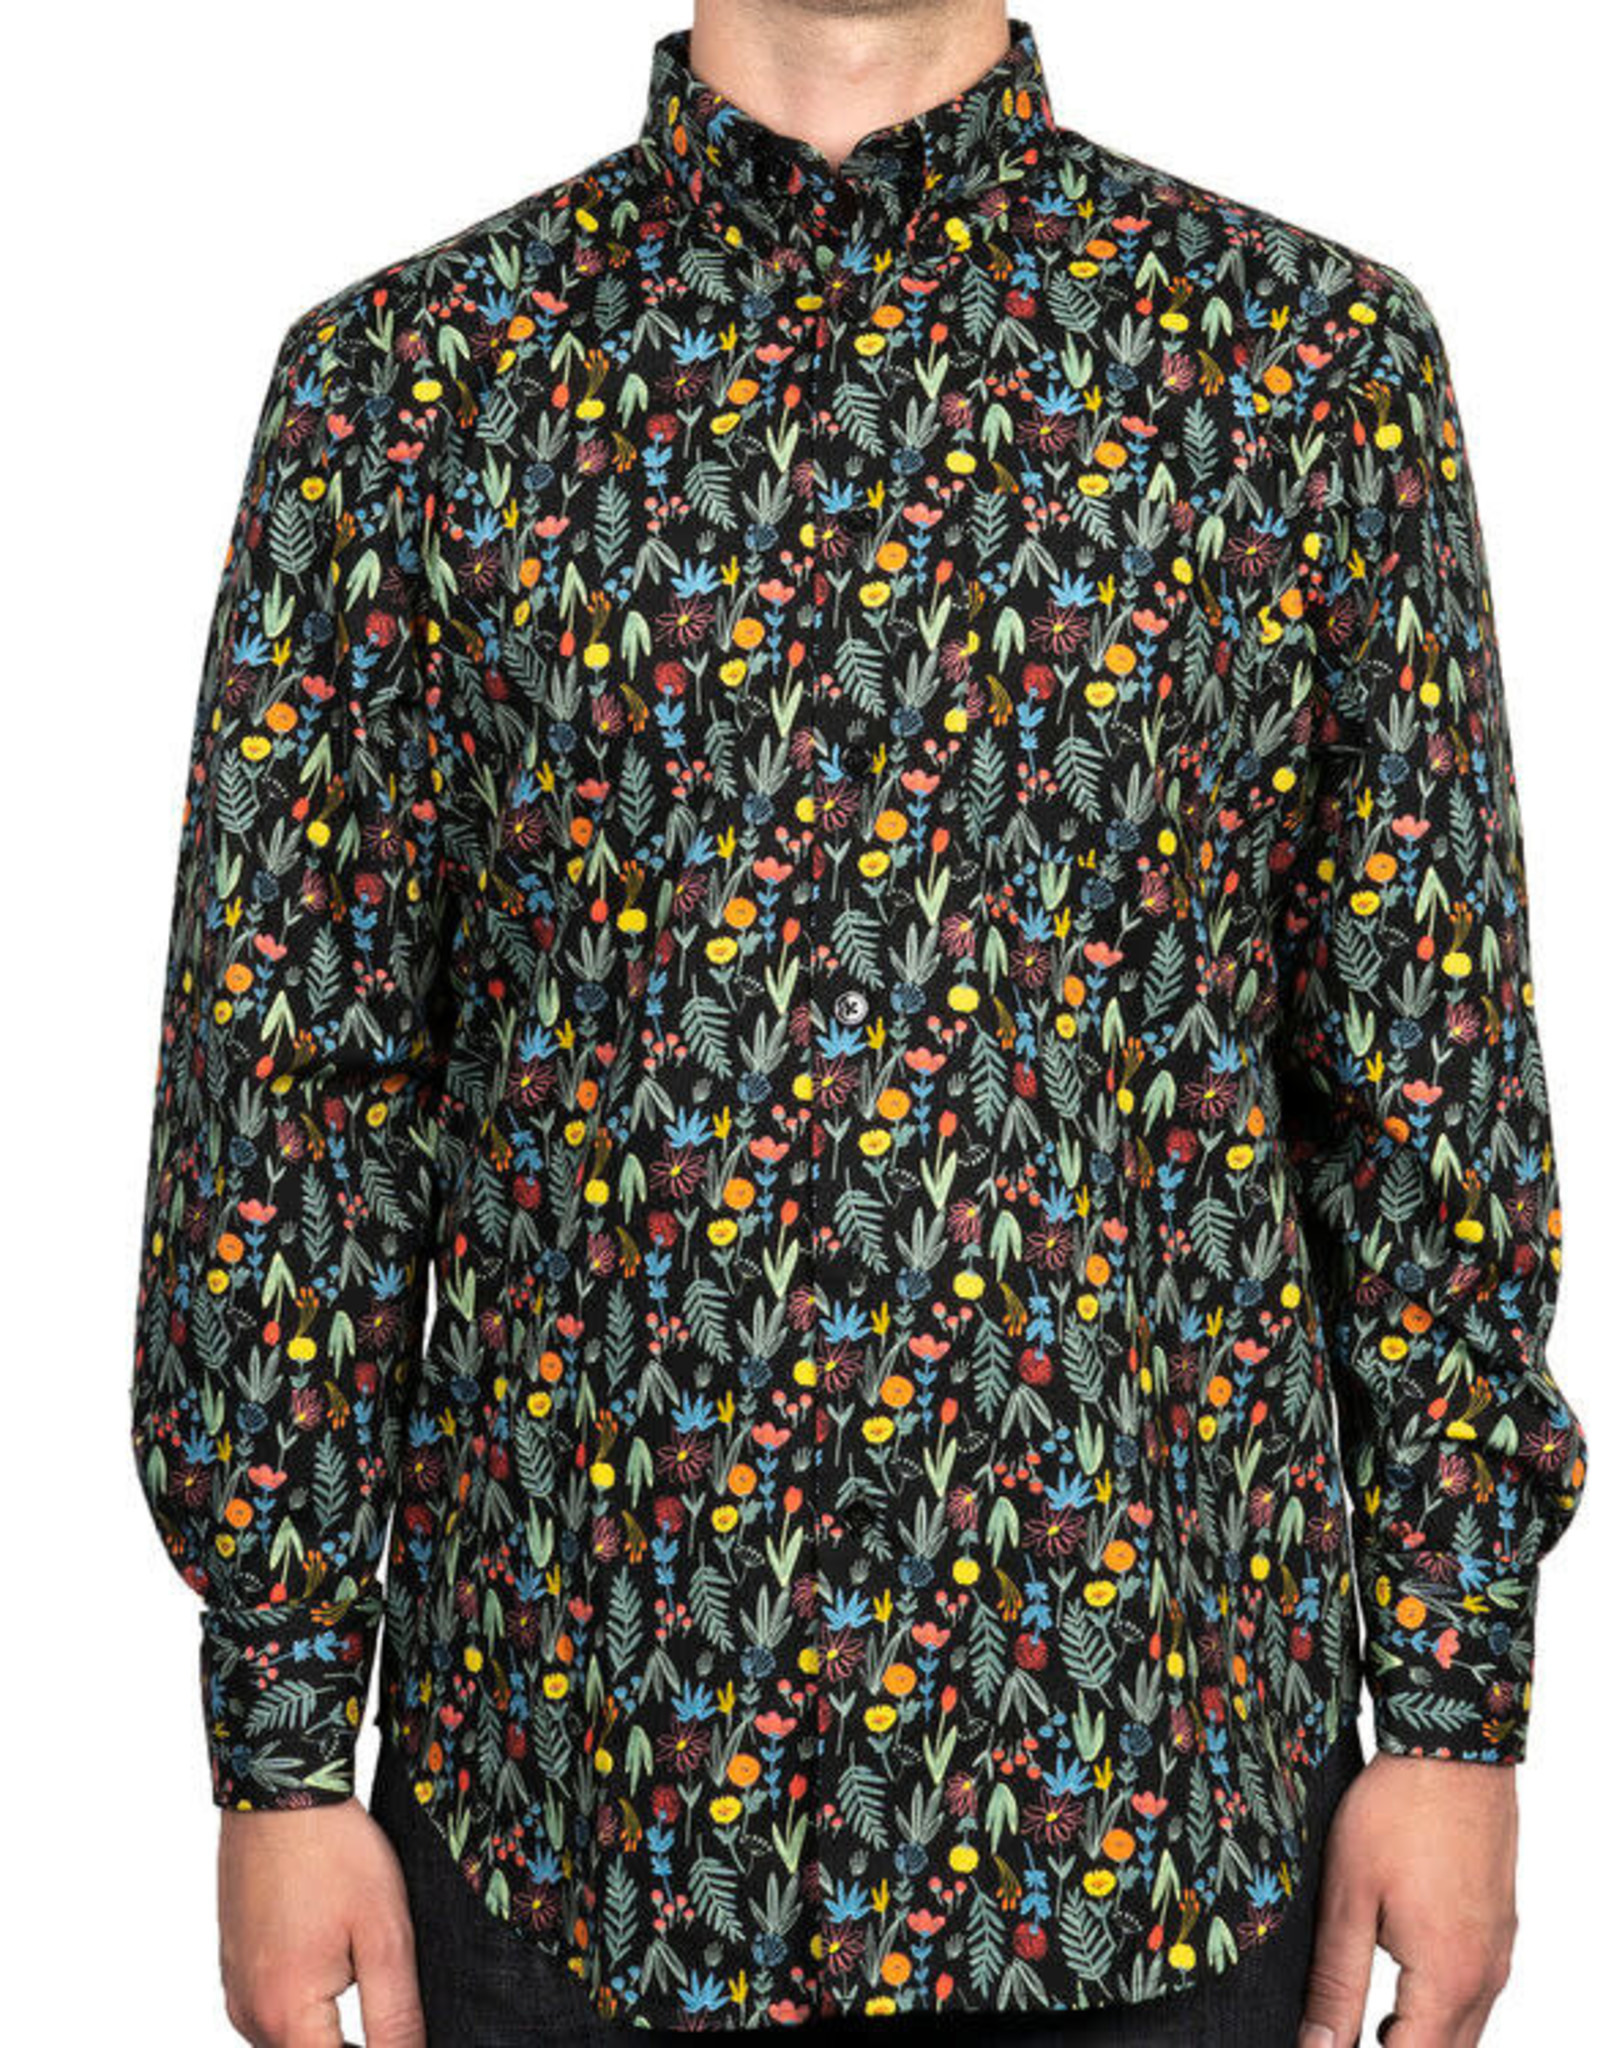 Naked and Famous Easy Shirt AH2021 Naked & Famous Pastel Flowers Black